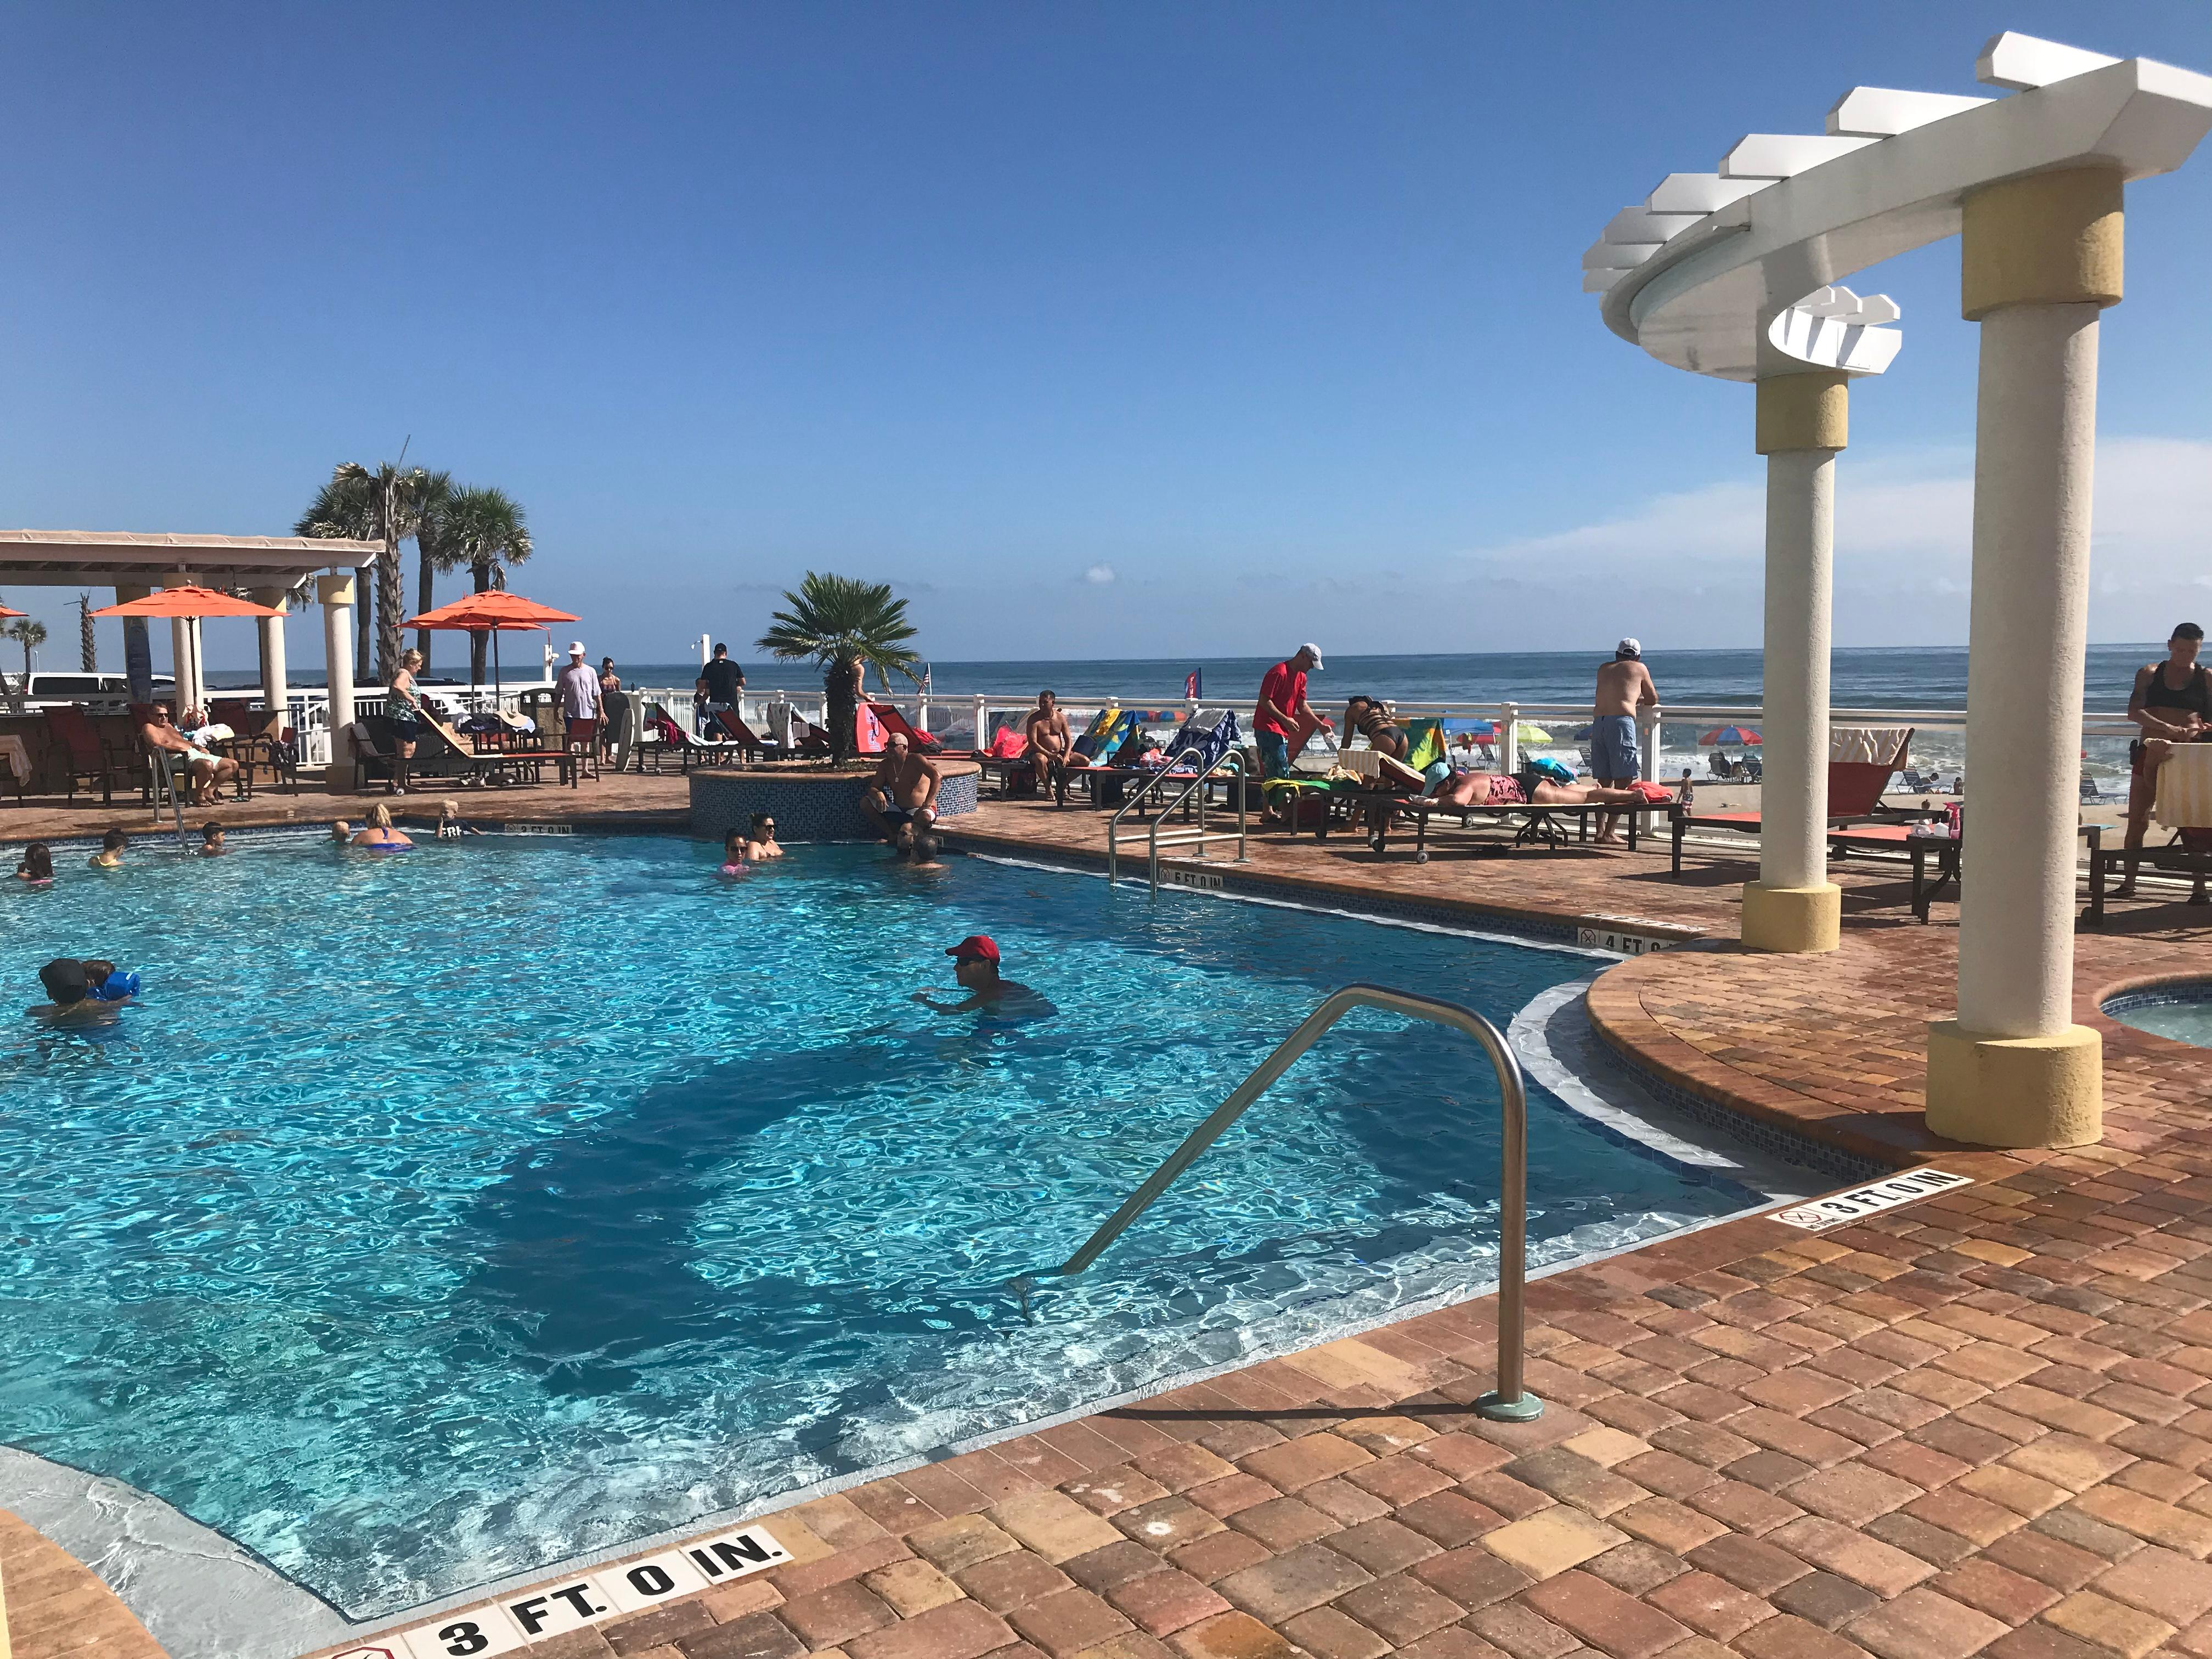 everything was perfect beautiful and very accommodating the price was really reasonable for the hilton wish we could of stayed longer xxxxxxxx - Hilton Garden Inn Daytona Beach